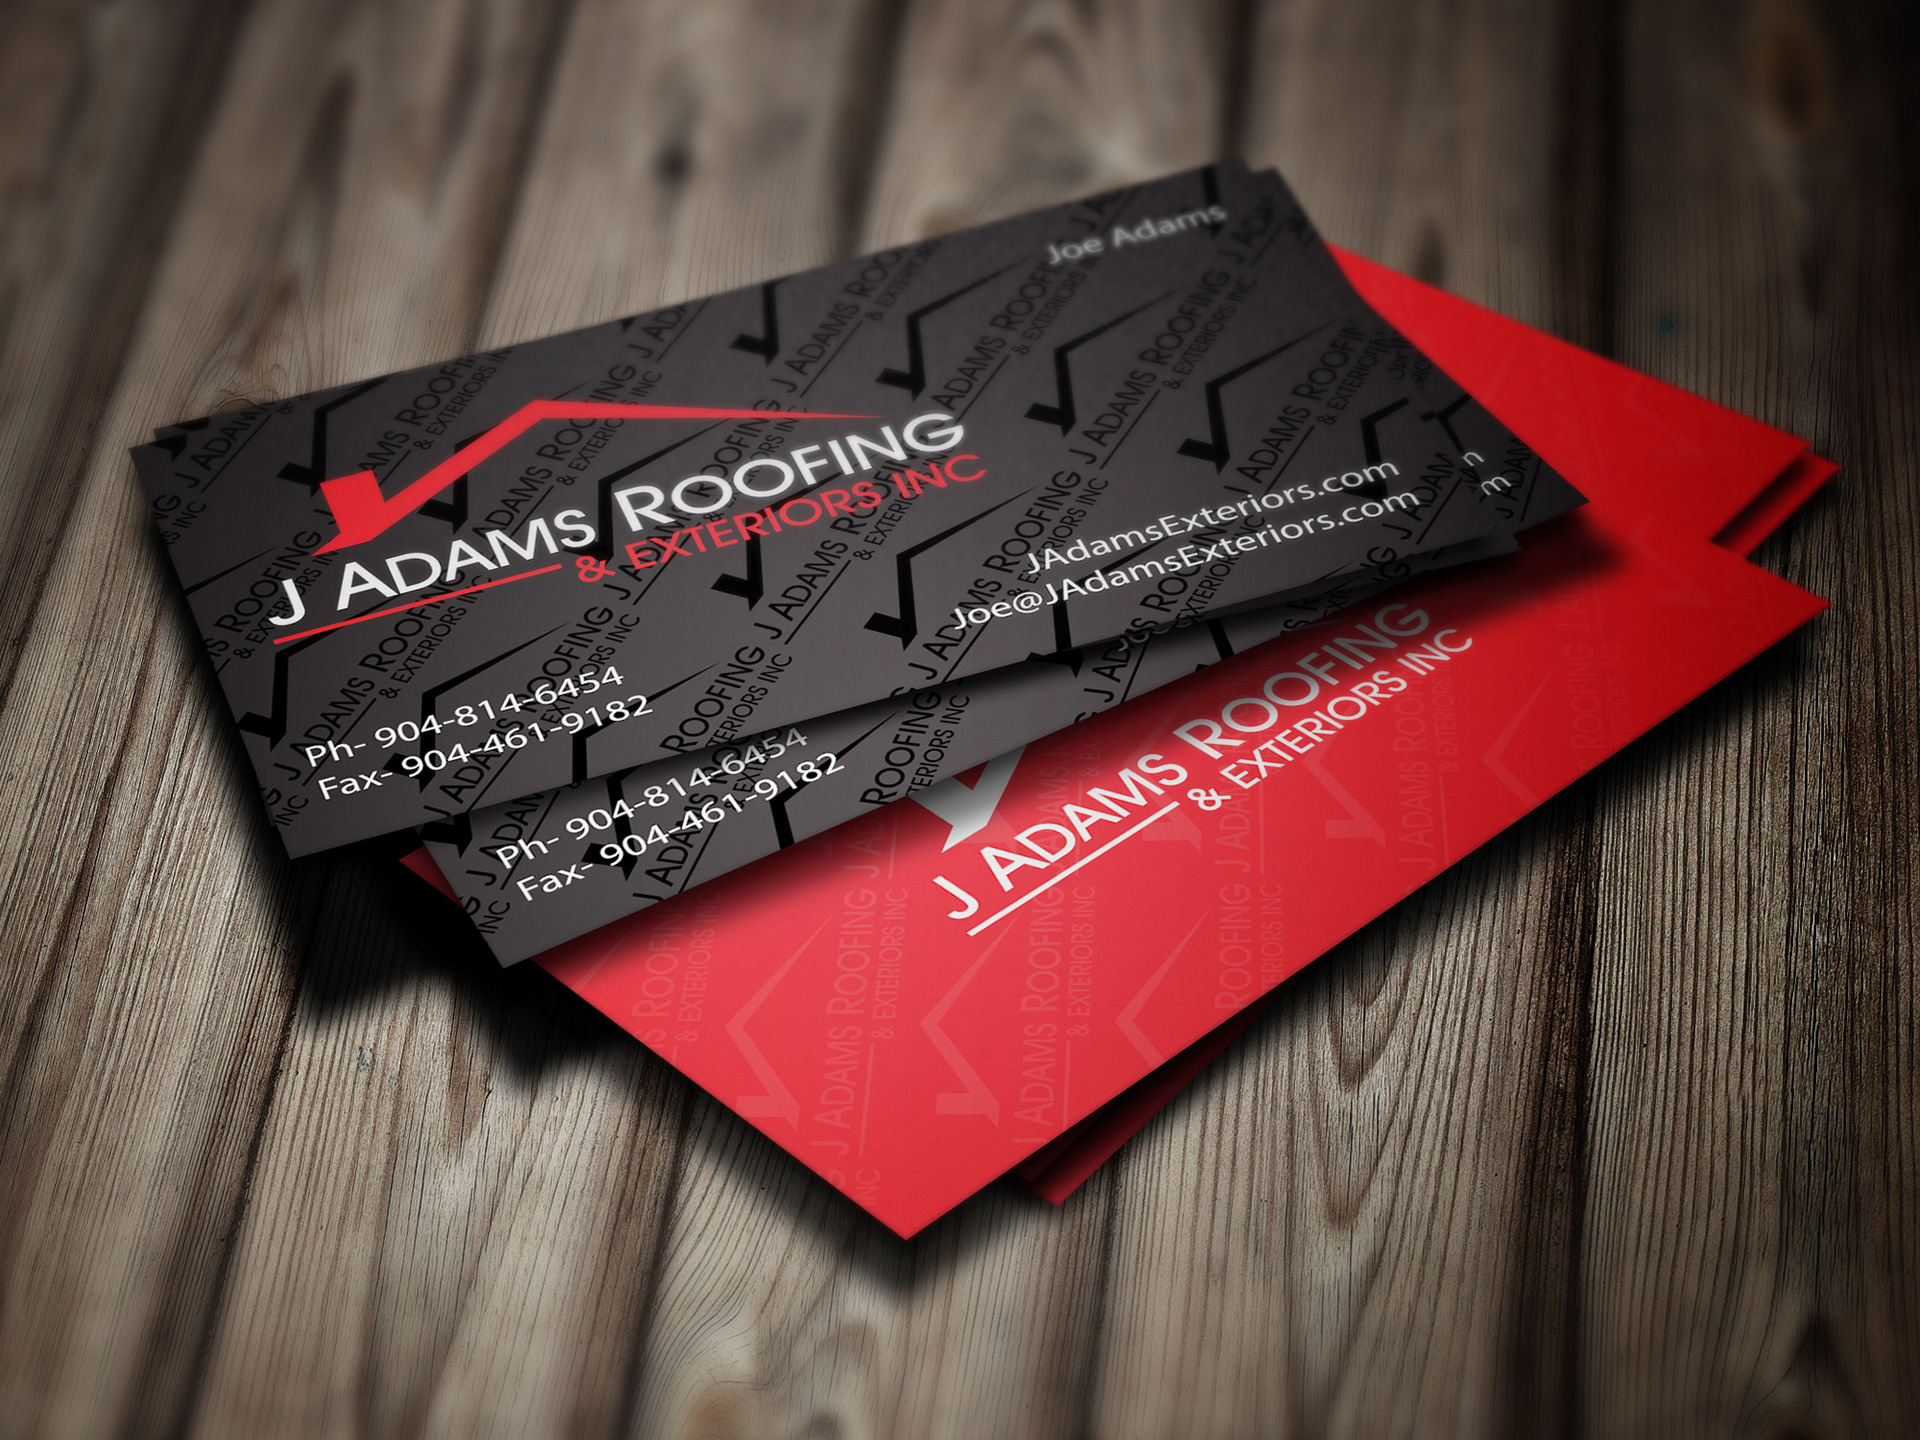 business card - Roofing Business Cards